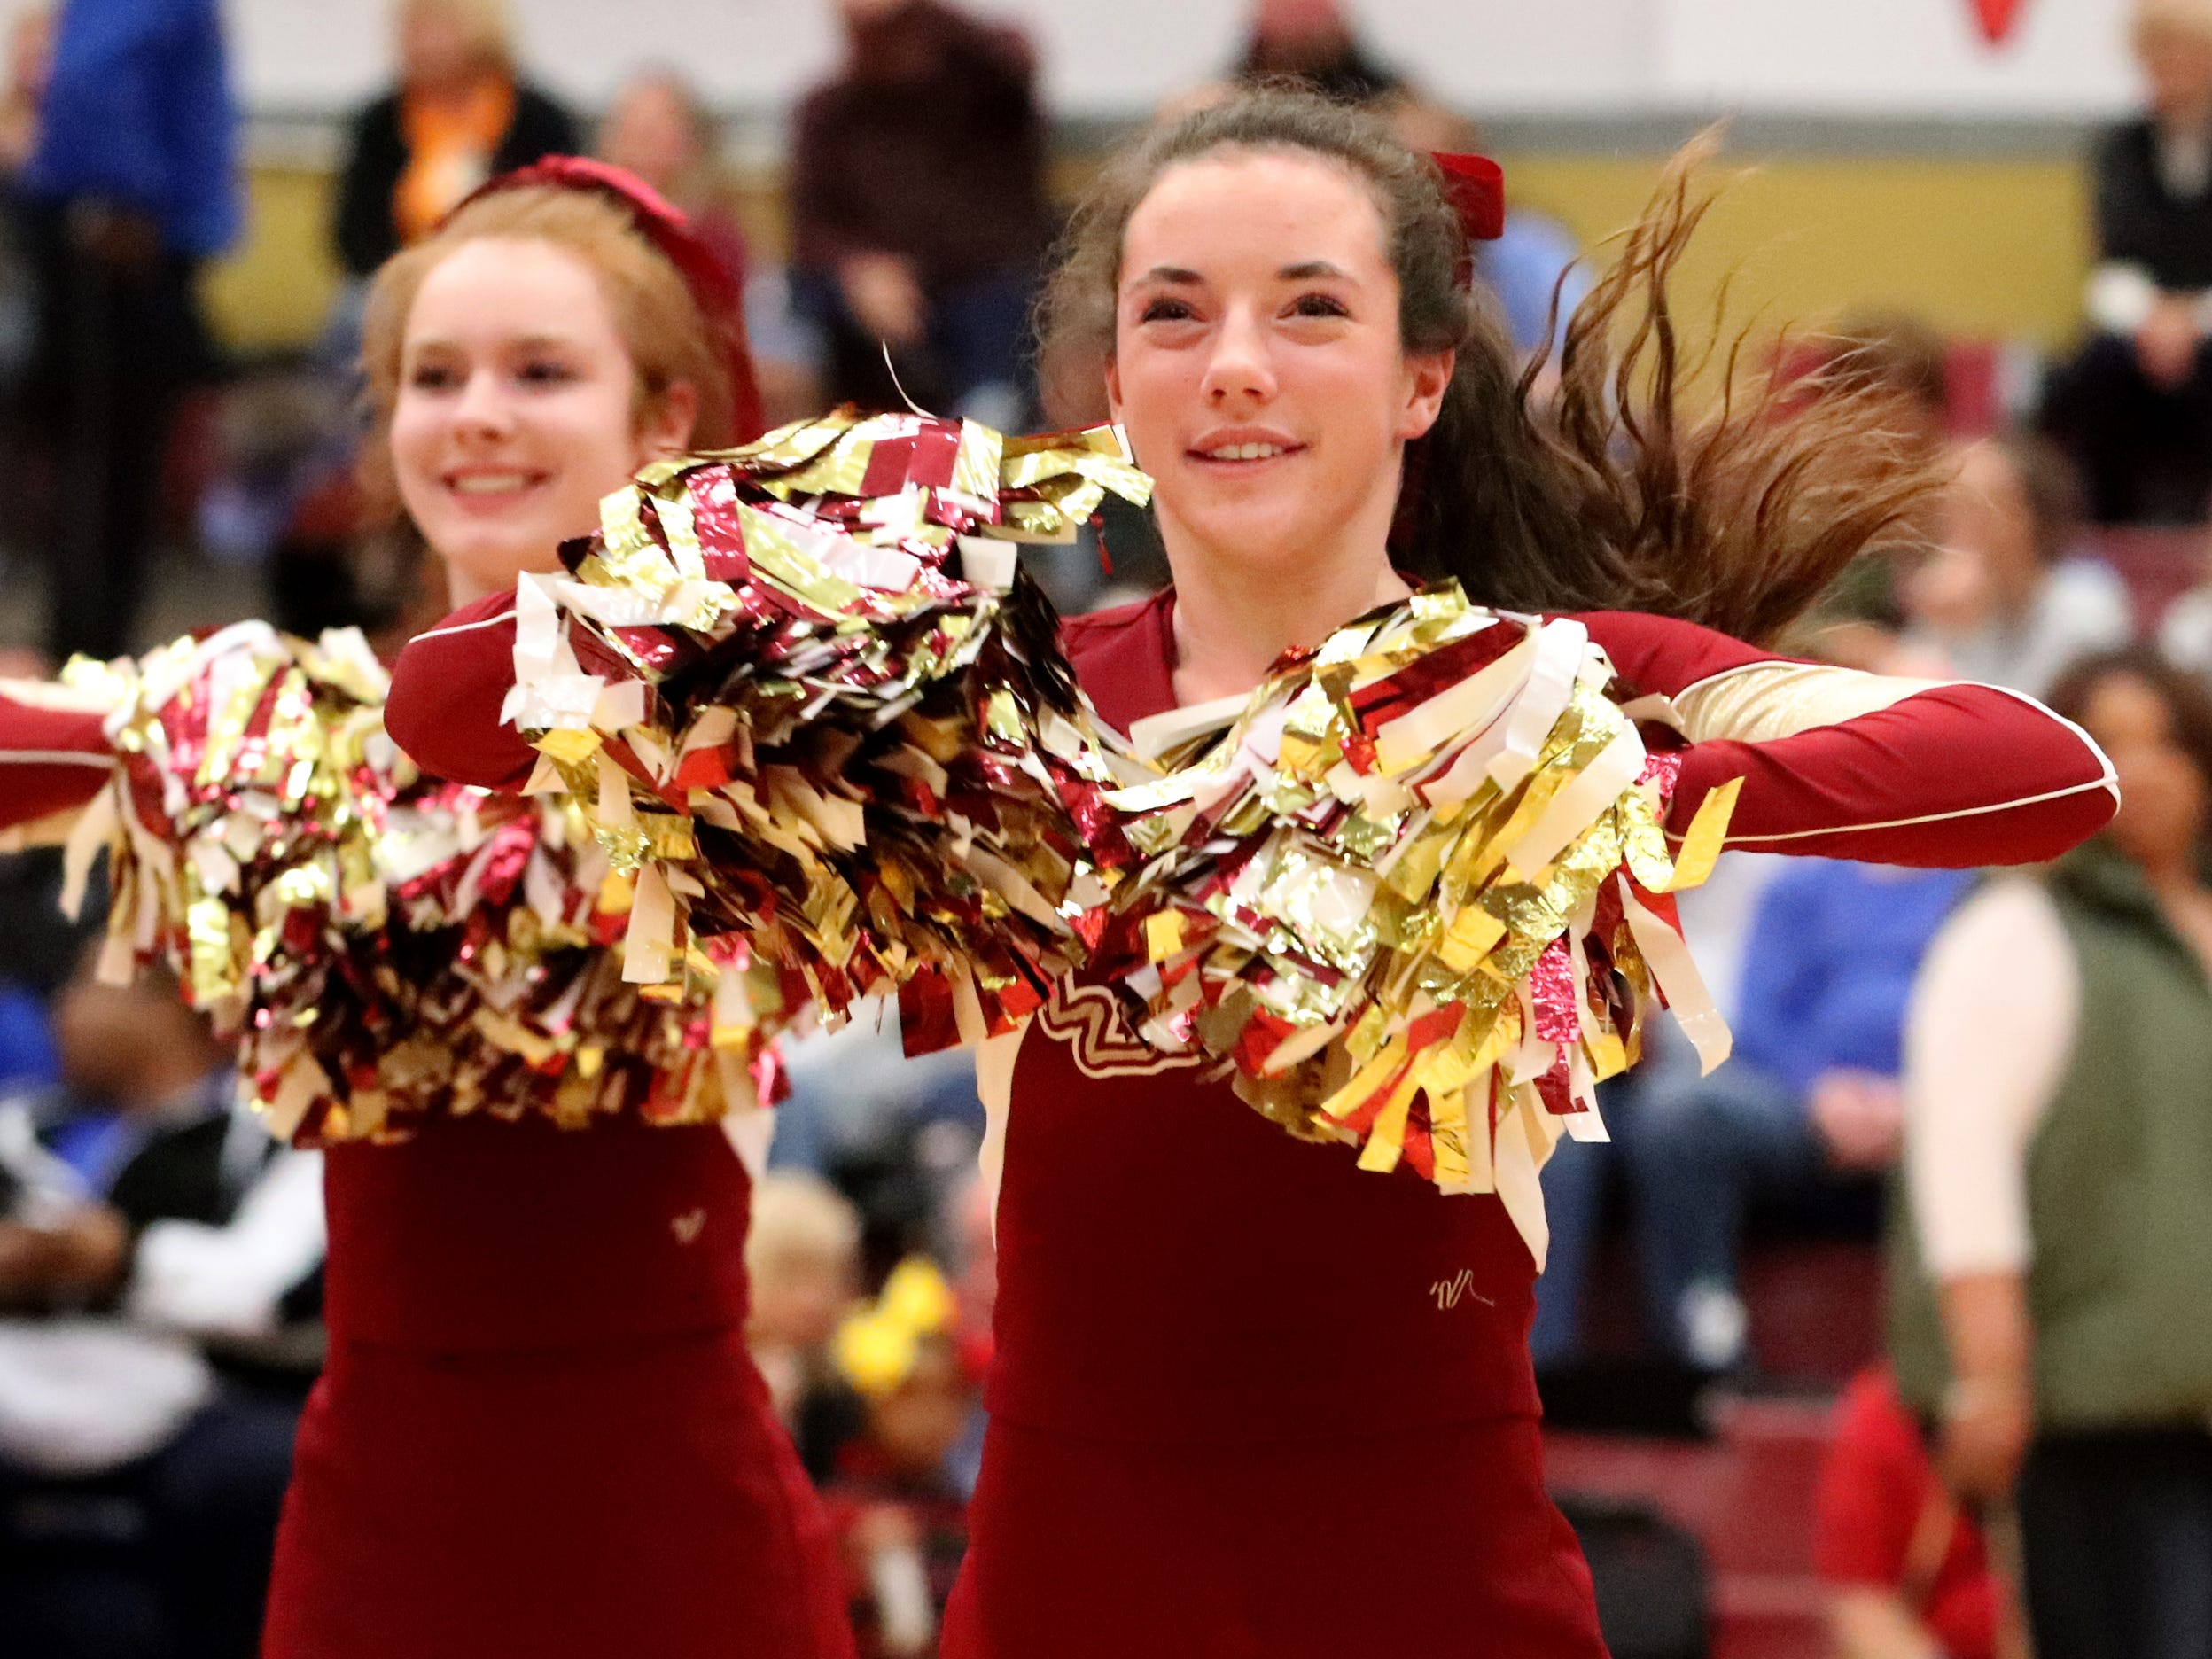 Riverdale cheerleaders perform during halftime of the Riberdale girls game against Lebanon during the game on Friday, Nov. 30, 2018.